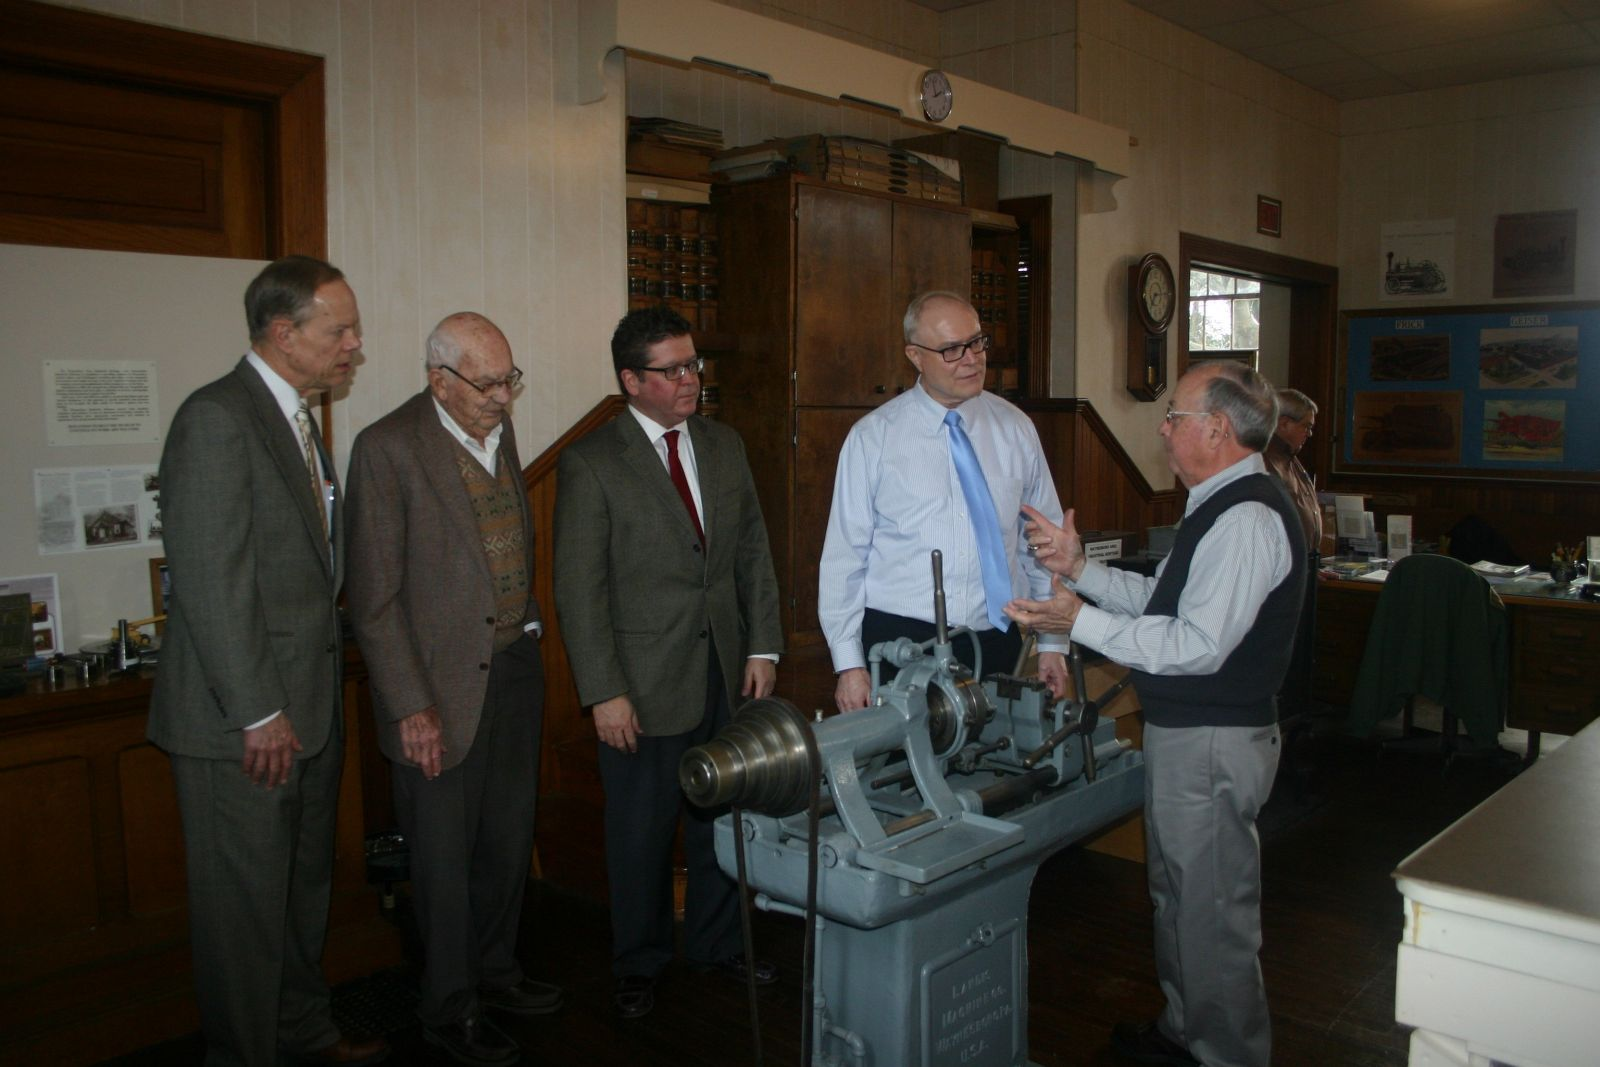 Franklin County Commissioners tour Waynesboro Industrial Museum, guided by George Buckey and Brian Shook.